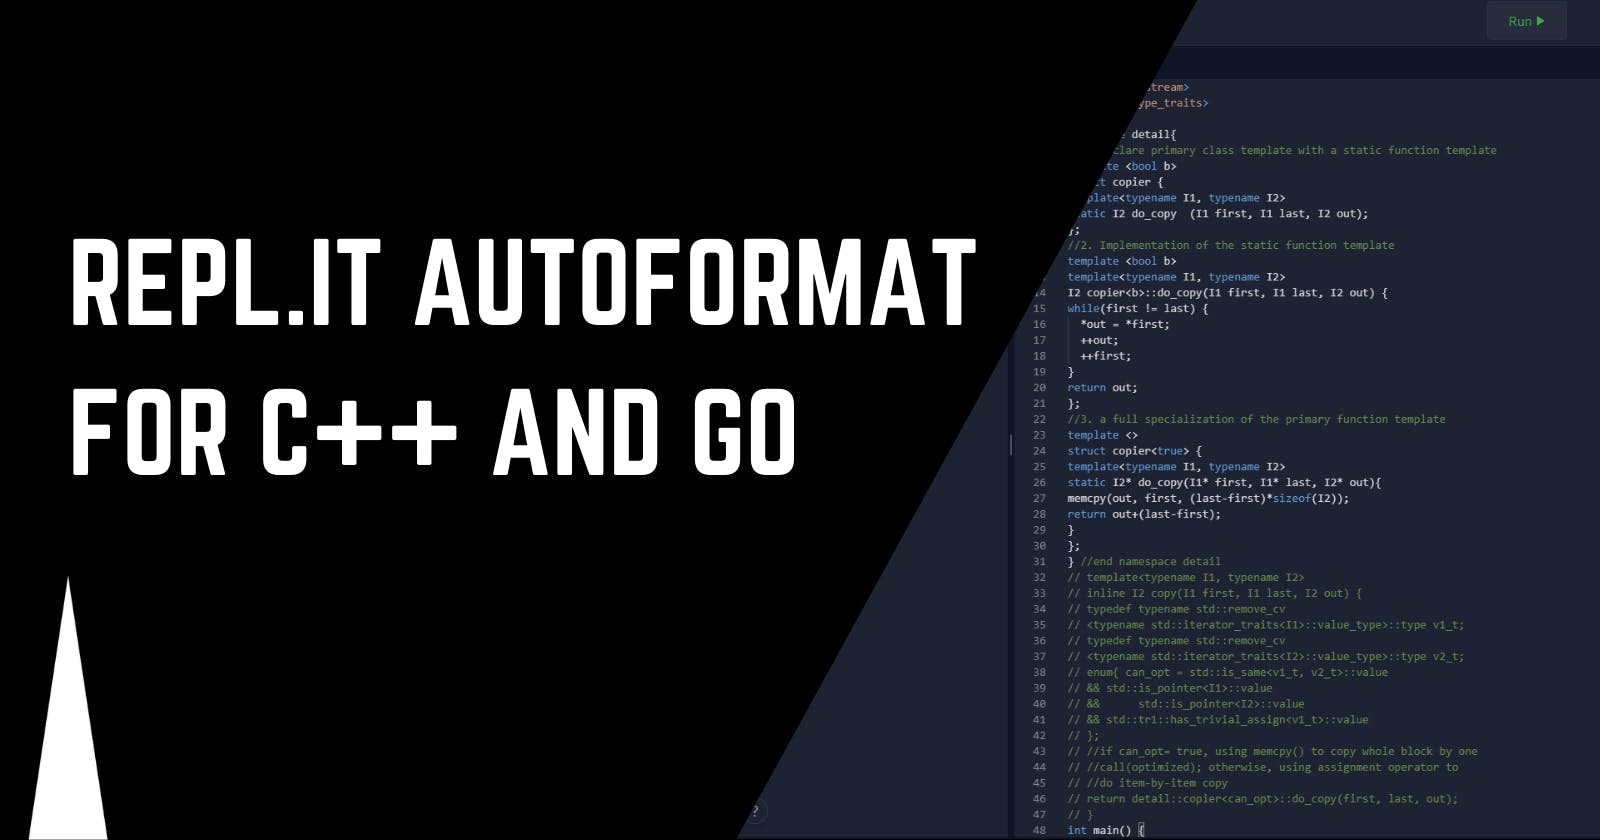 Repl.it code auto-format for C++ and Go